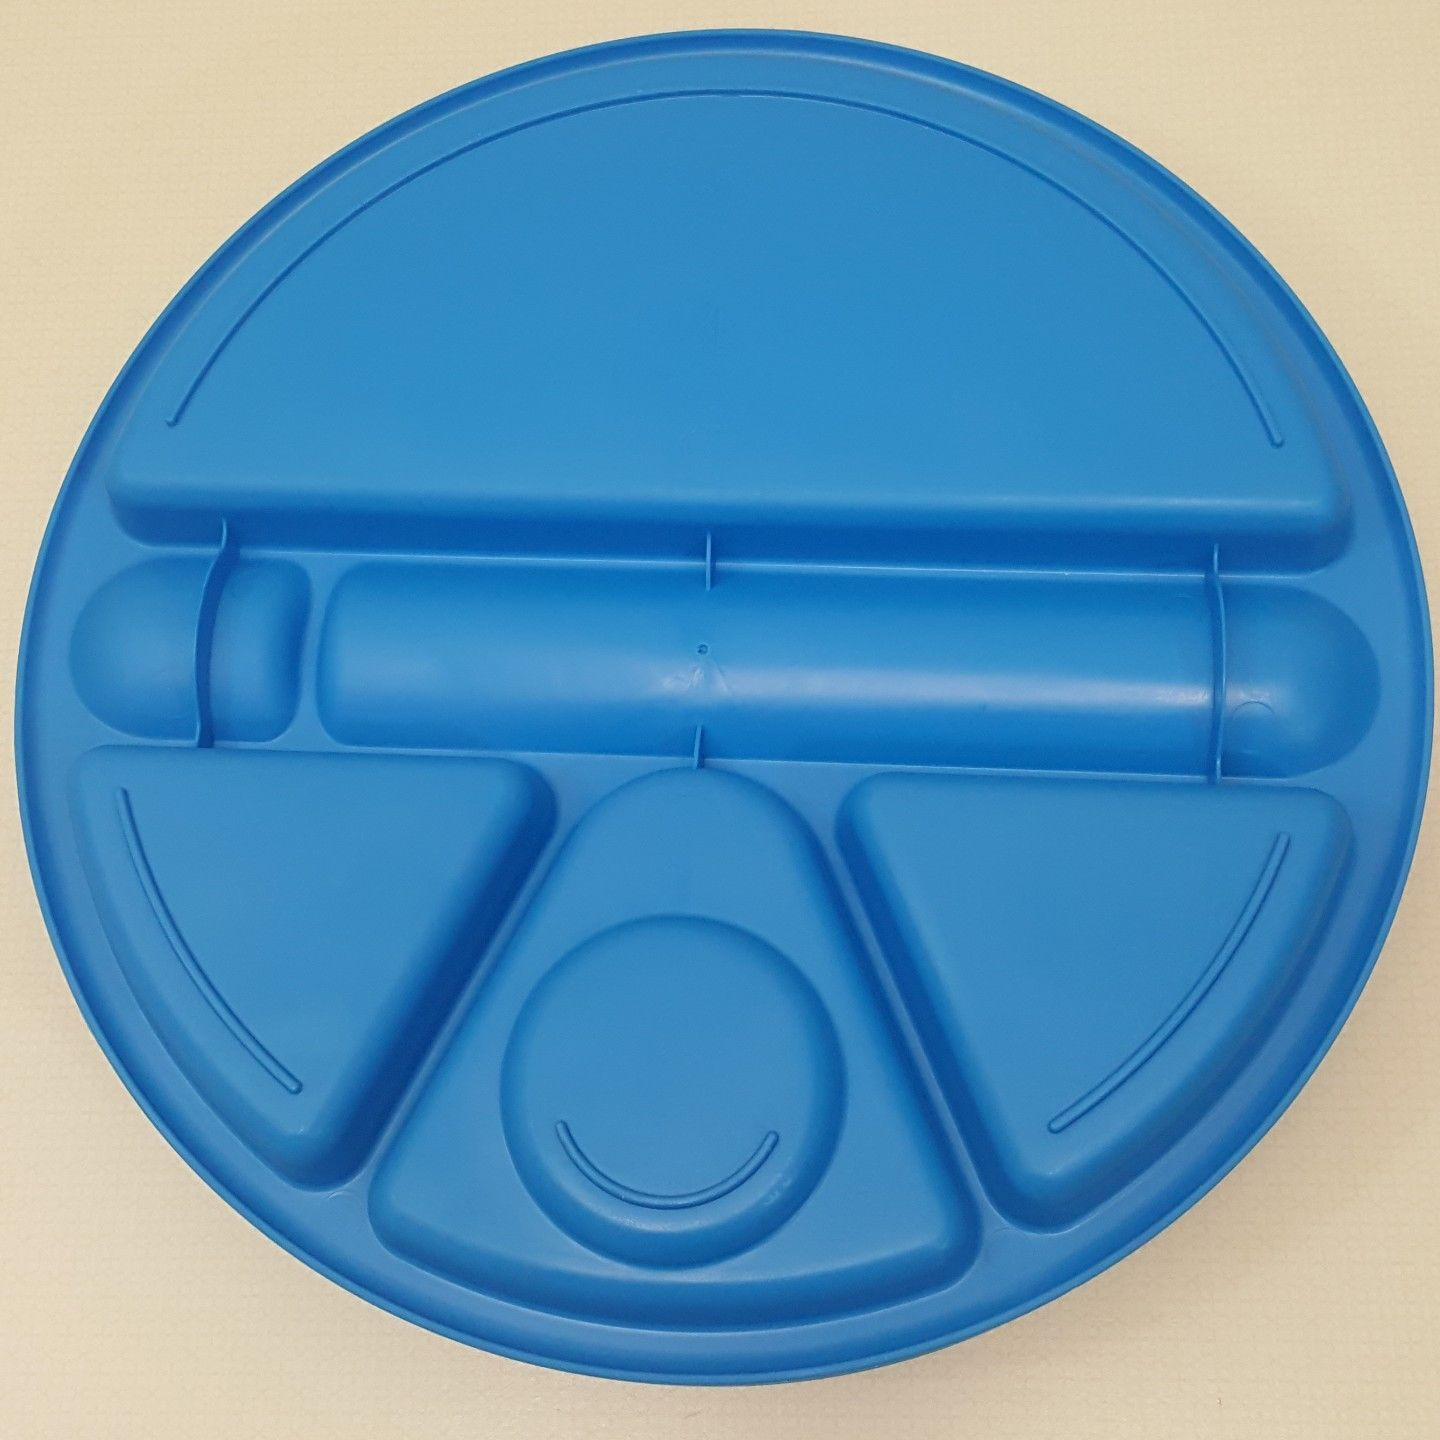 Arrow 4 Plastic Divider Plates Blue Round Lunch Serving Tray Picnic Camping USA